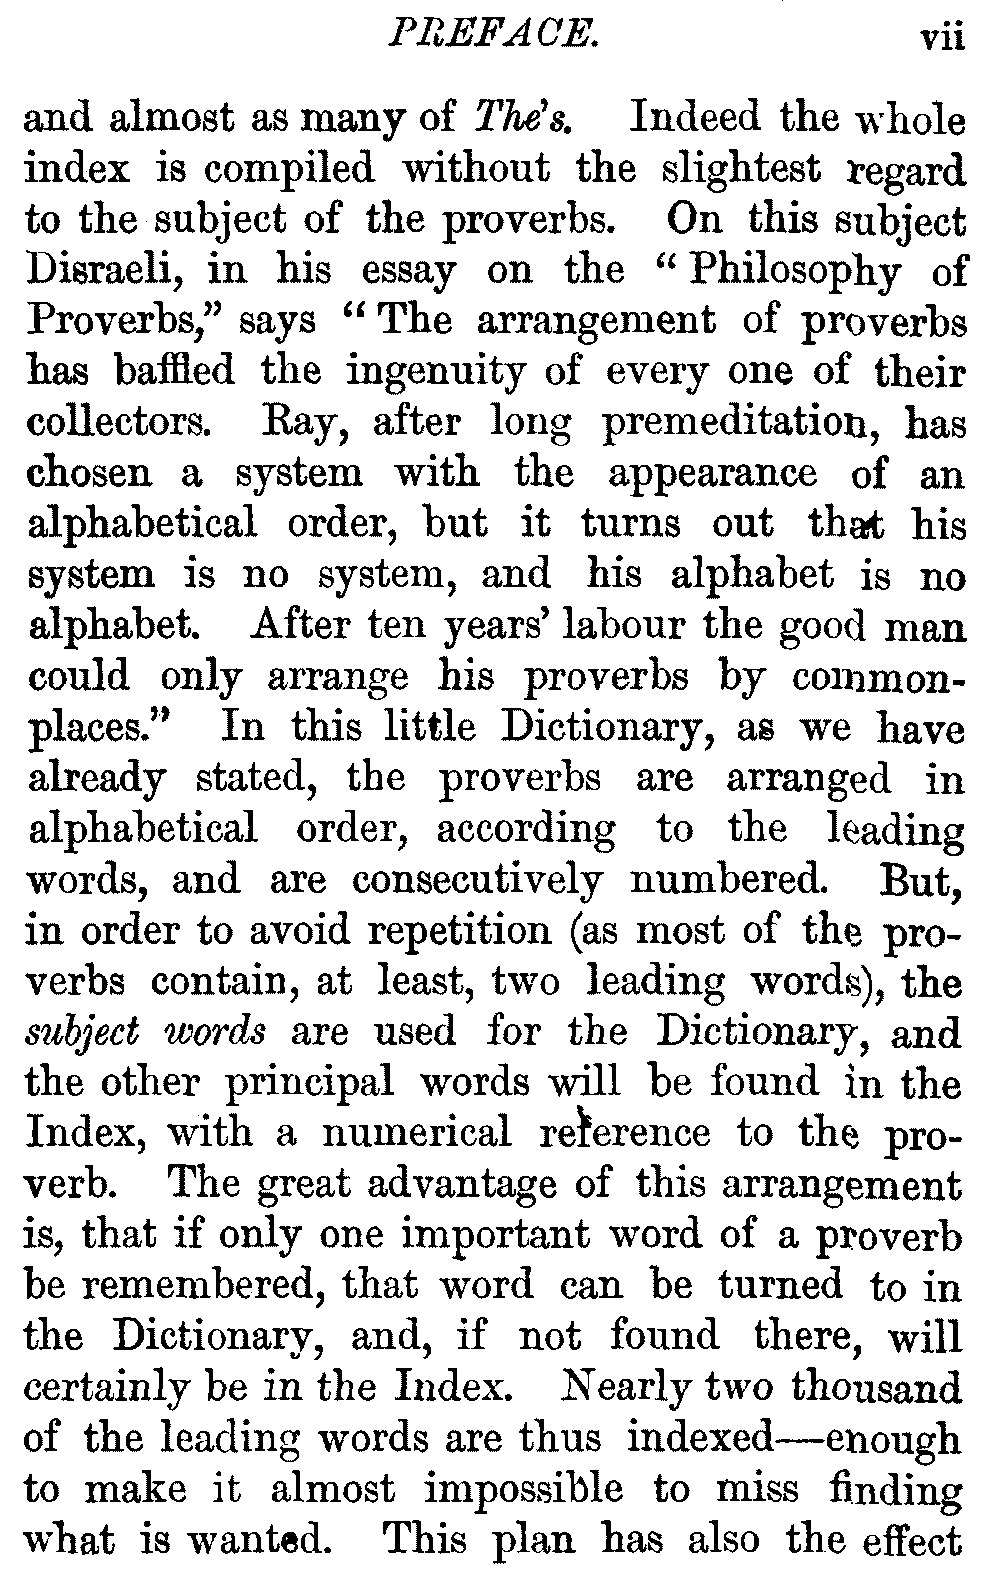 the project ebook of a dictionary of english proverbs indeed the whole index is compiled out the slightest regard to the subject of the proverbs on this subject d i in his essay on the philosophy